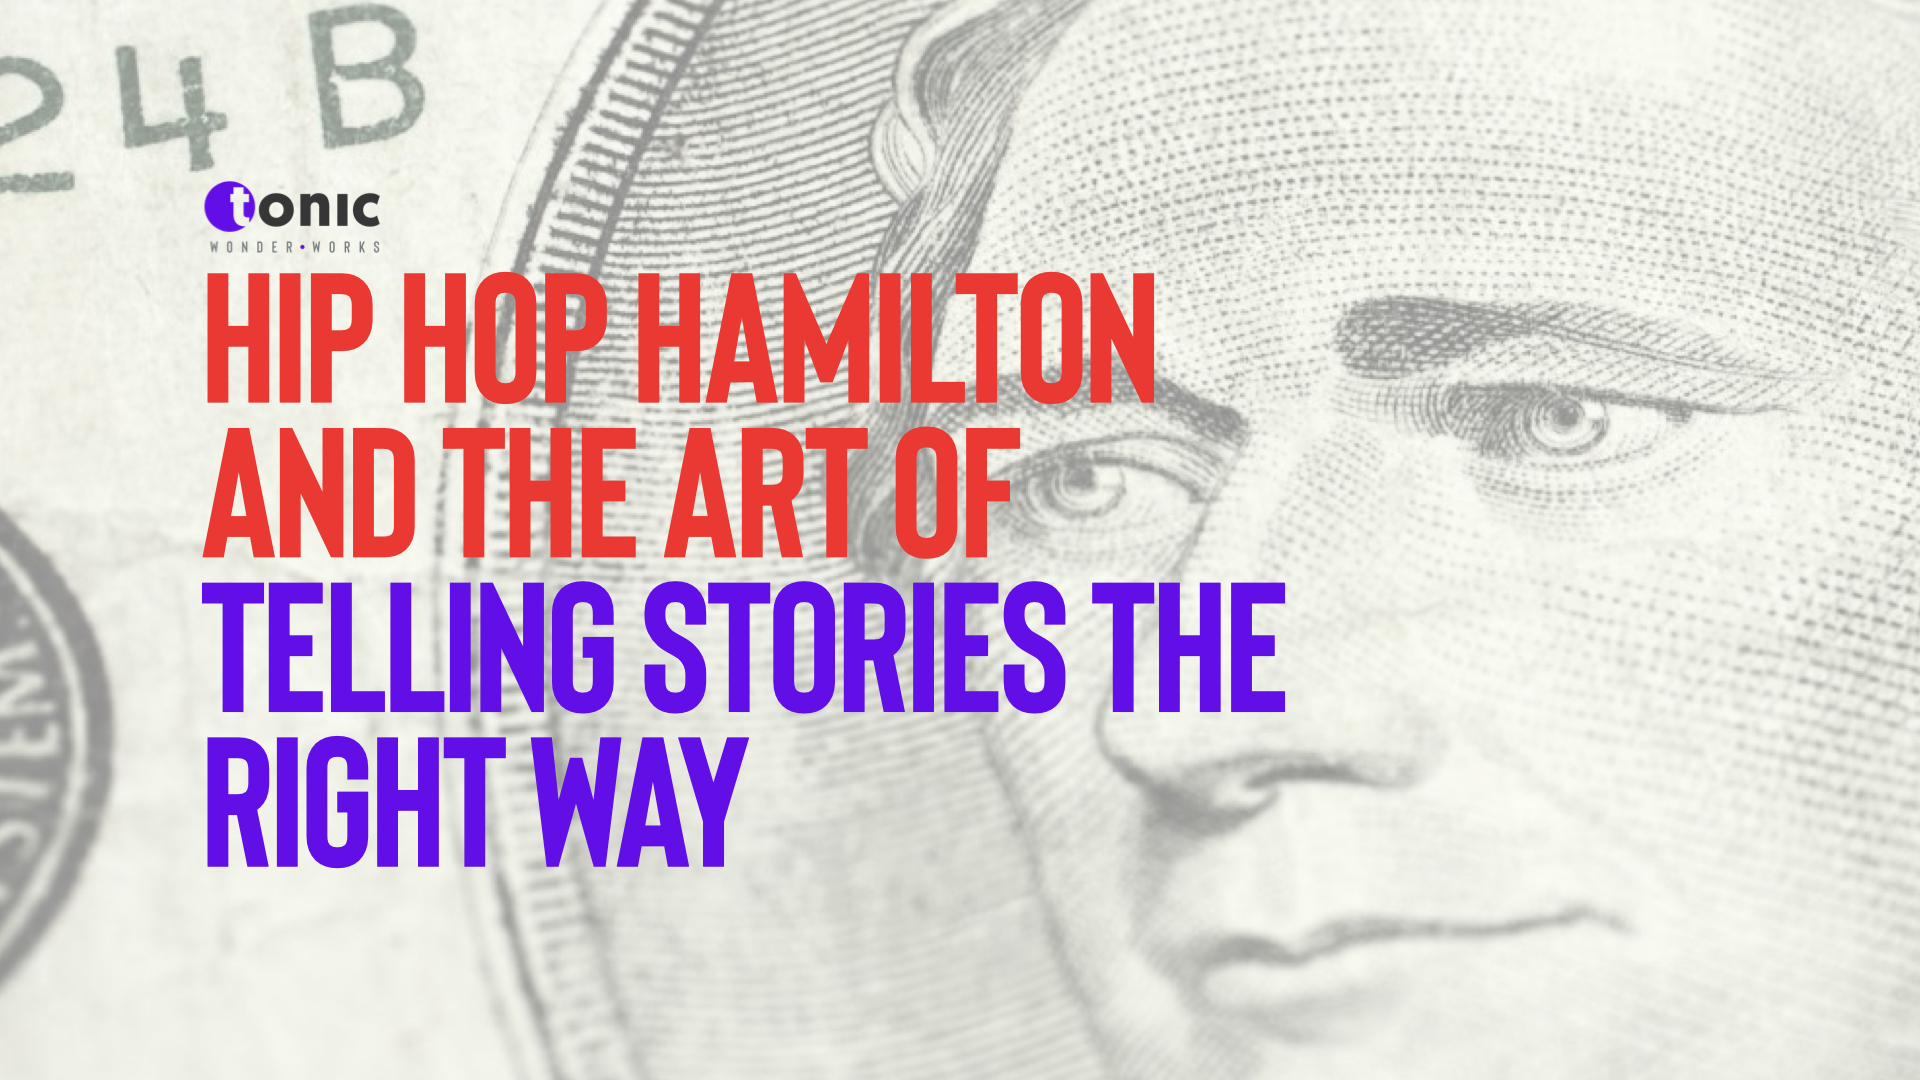 Hip Hop Hamilton and the art of telling stories the right way